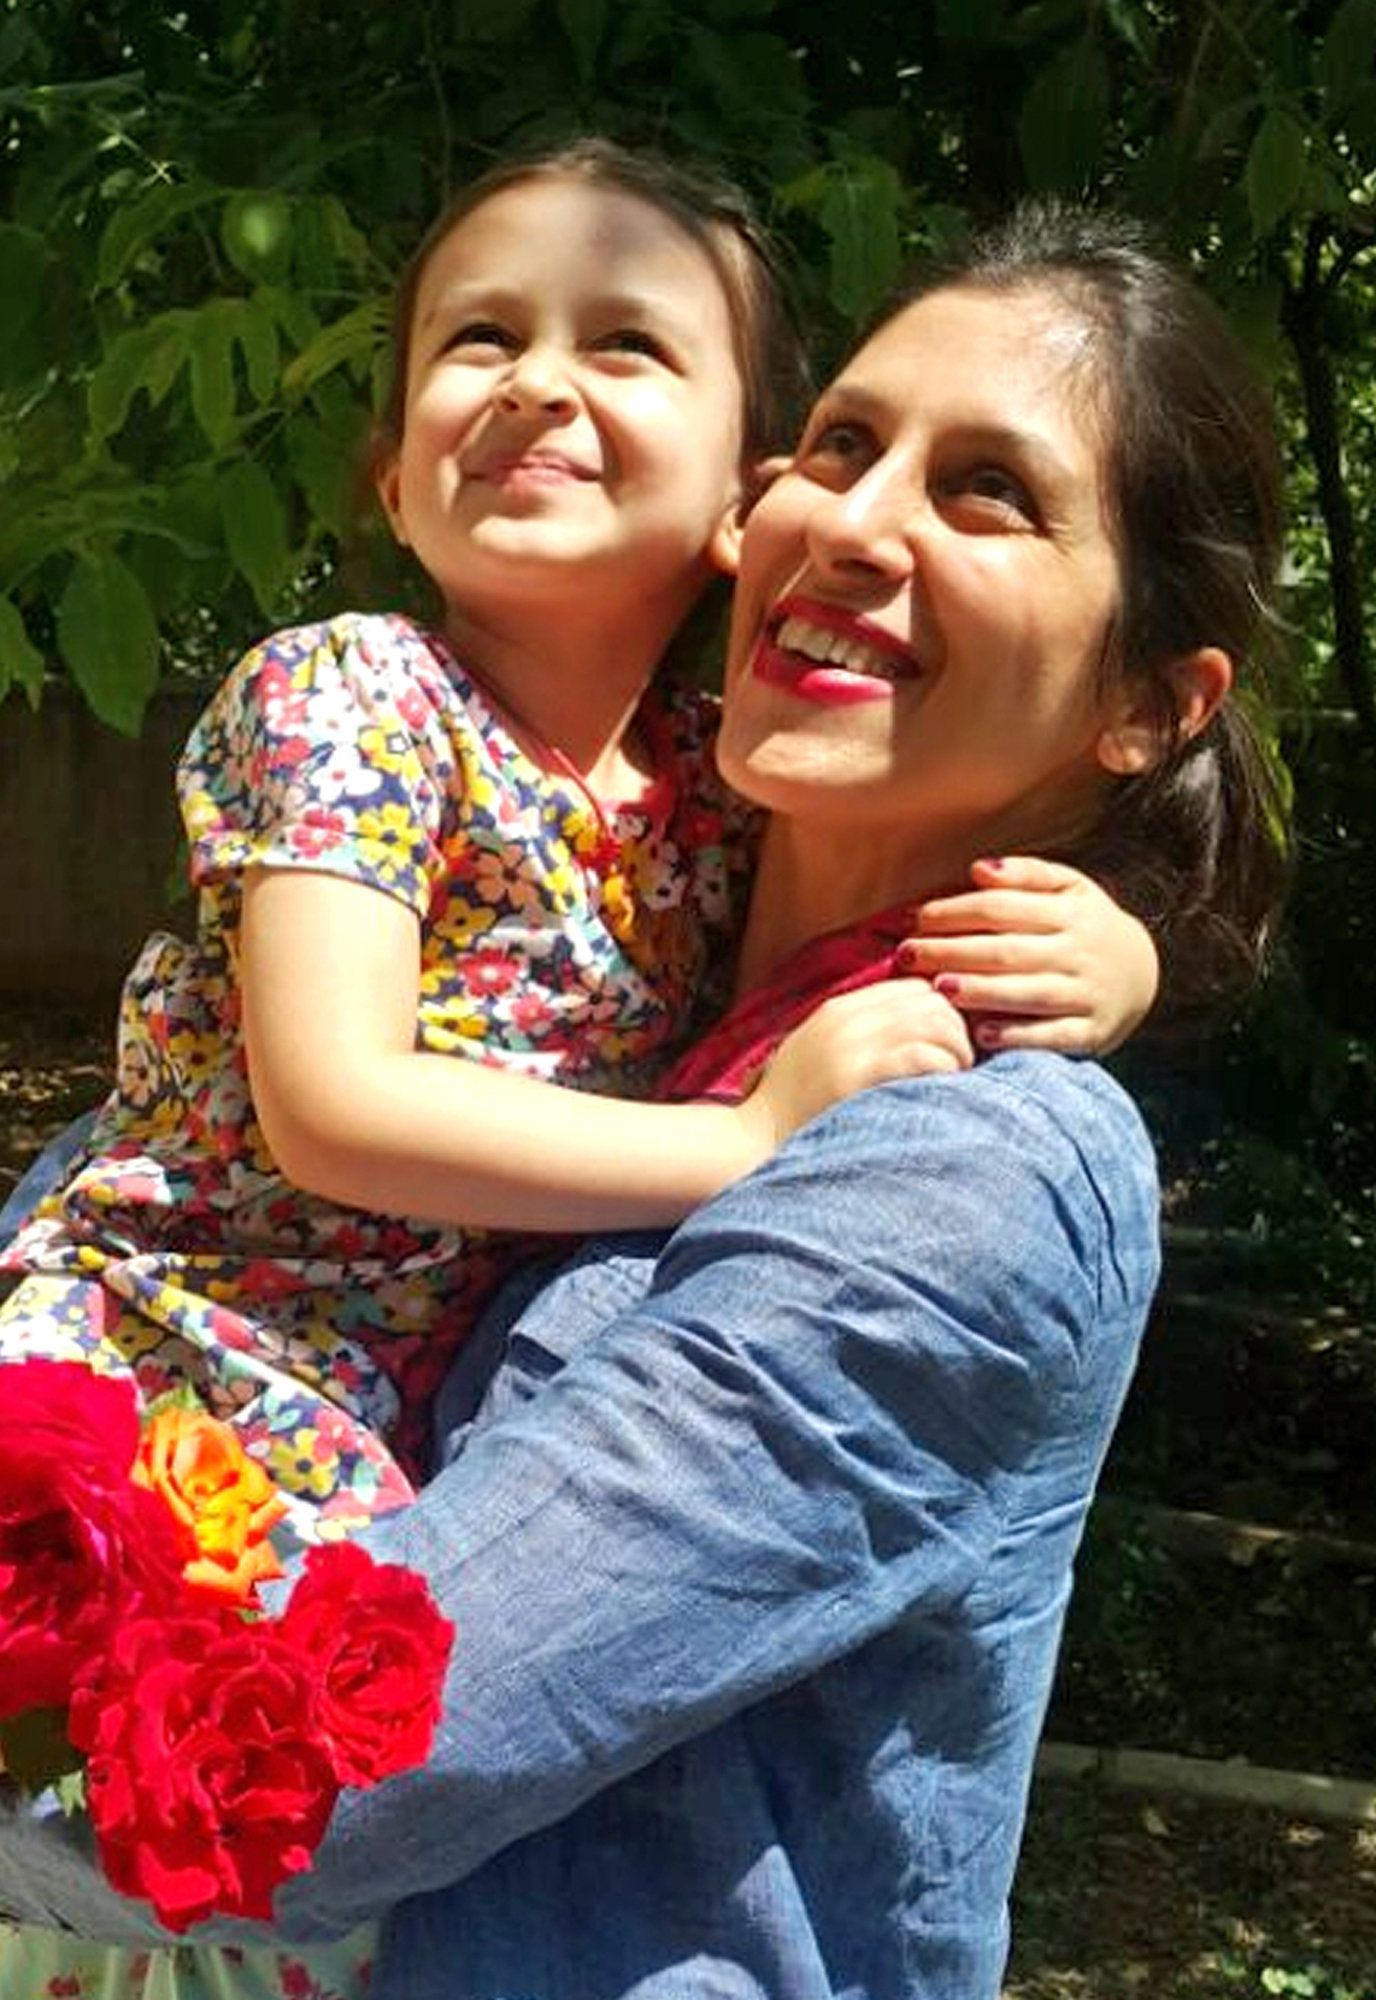 Husband Of Nazanin Zaghari-Ratcliffe To Lead Christmas Vigil For Brits Detained